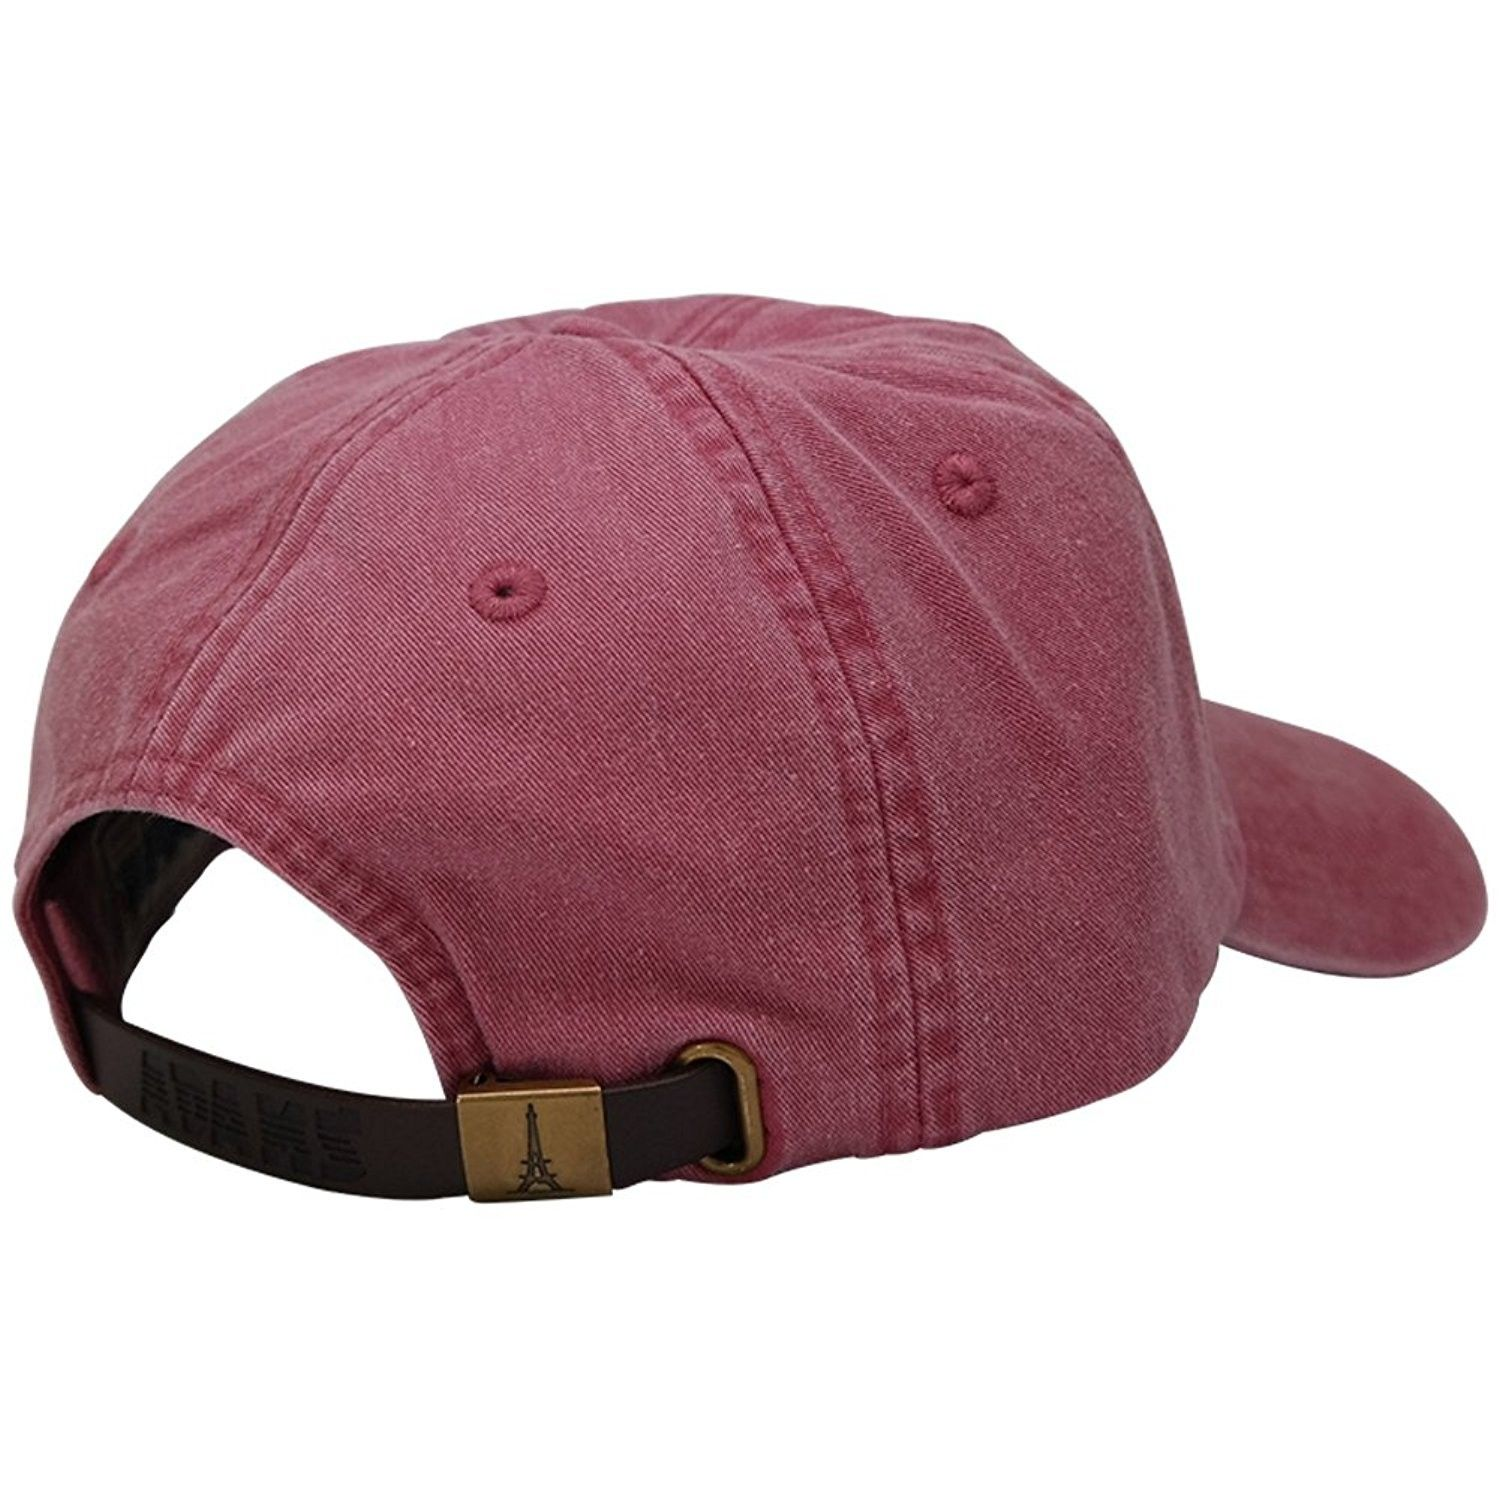 Sunbuster Extra Long Bill 100% Washed Cotton Cap with Leather ... 00b4611825c